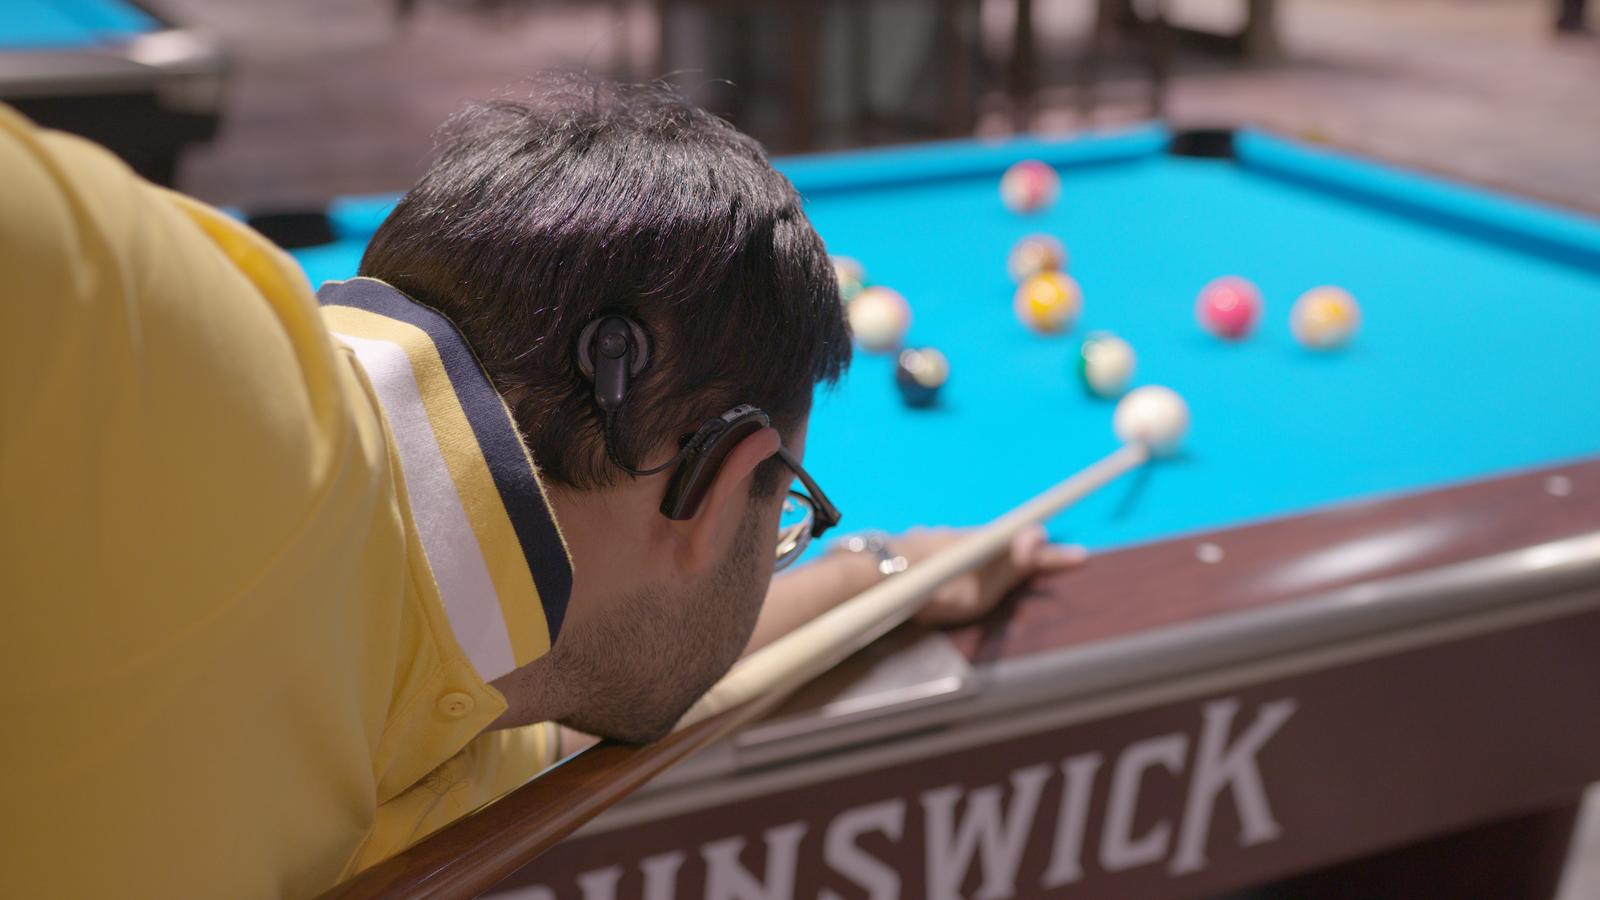 Adult man wearing an implant plays snooker